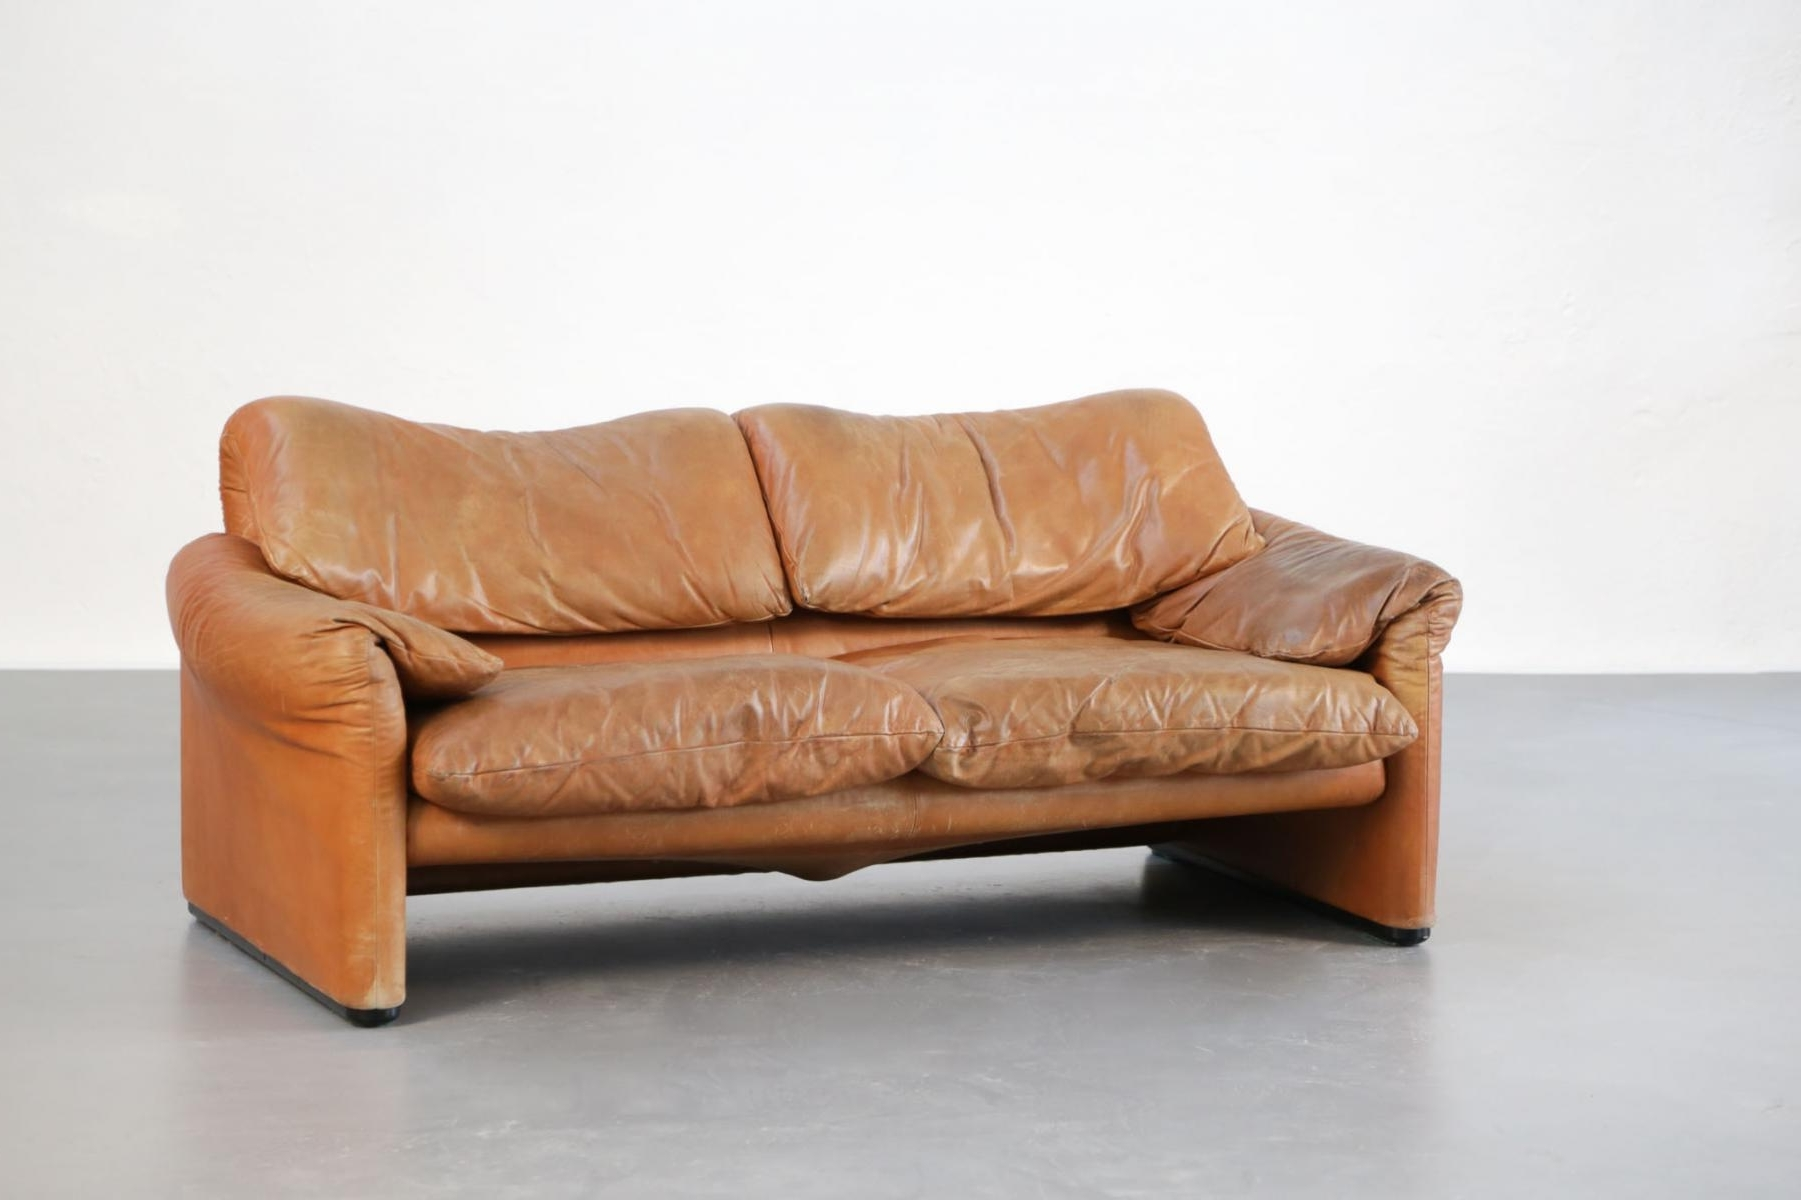 Preferred Vintage Maralunga Sofavico Magistretti For Cassina For Sale At In Vintage Sofas (View 9 of 15)